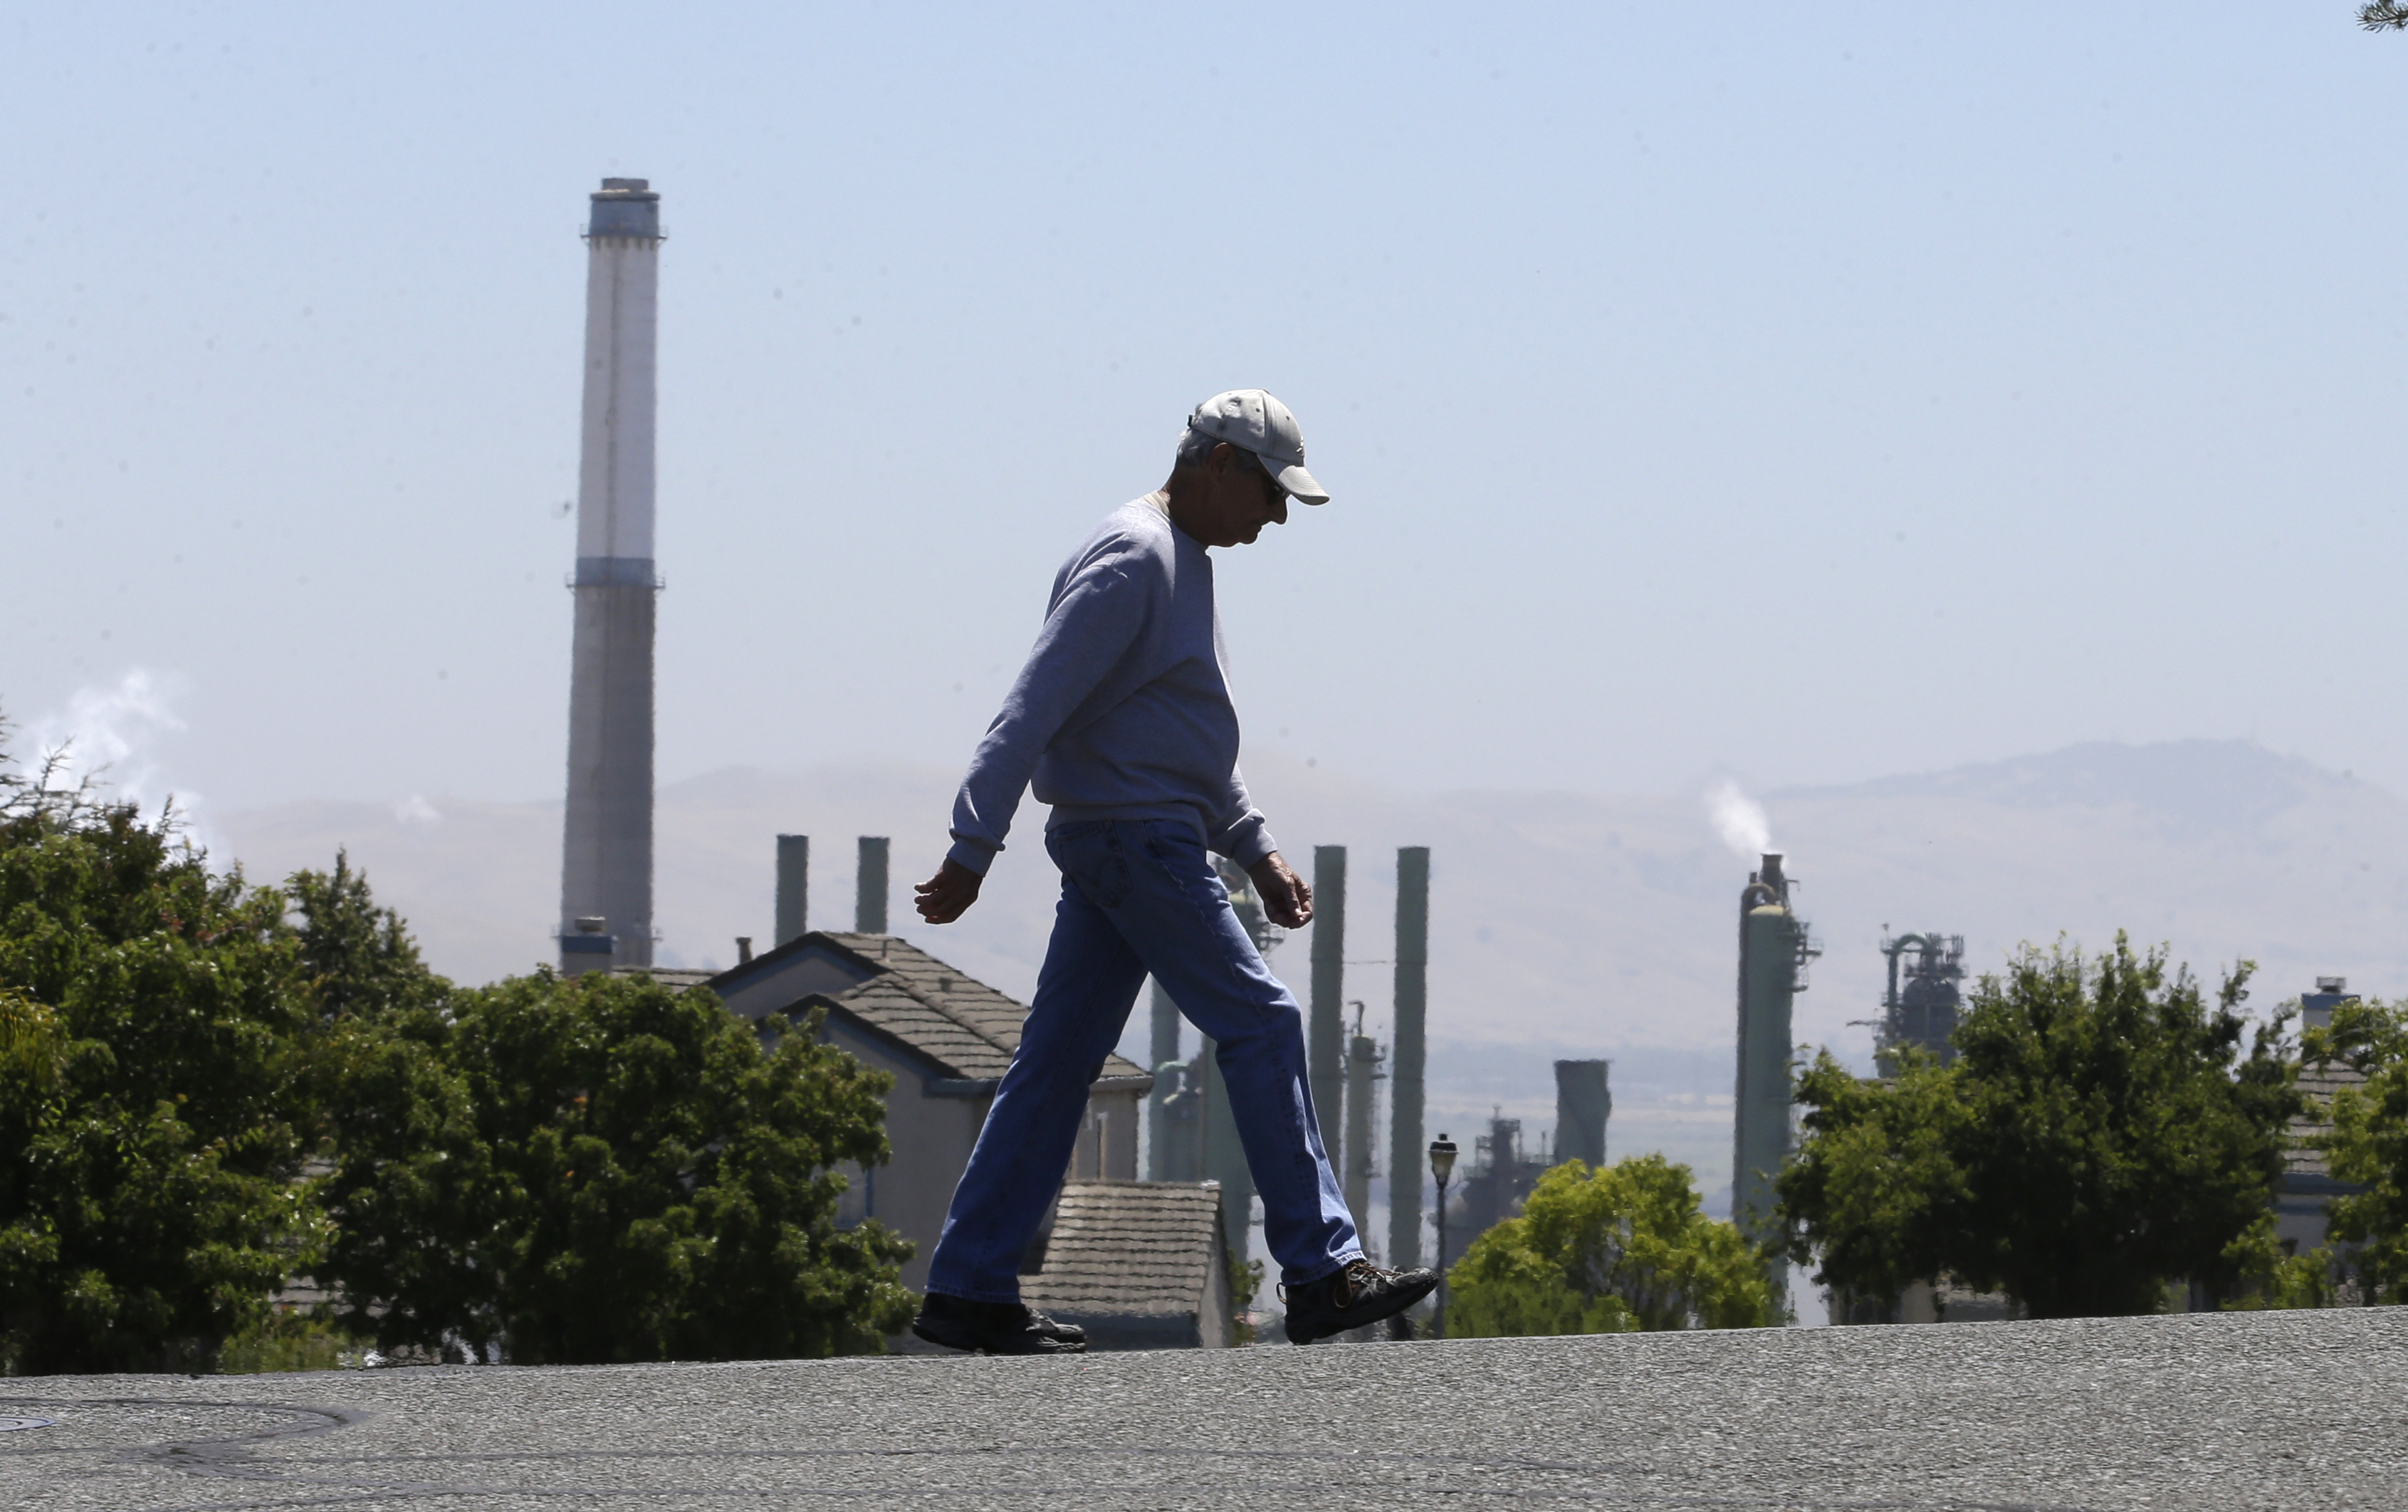 California Climate Change Q and A-1 The stacks from the Valero Benicia Refinery are seen as a pedestrian walks in a nearby neighborhood, Wednesday, July 12, 2017, in Benicia, Calif. California Gov. Jerry Brown is racing to convince state lawmakers to extend California's cap-and-trade program which puts a price on carbon emitted by polluters, including oil refineries. The program has been closely watched around the world as a market-based way to reduce greenhouse gas emissions, but it expires in 2020. (AP Photo/Rich Pedroncelli)